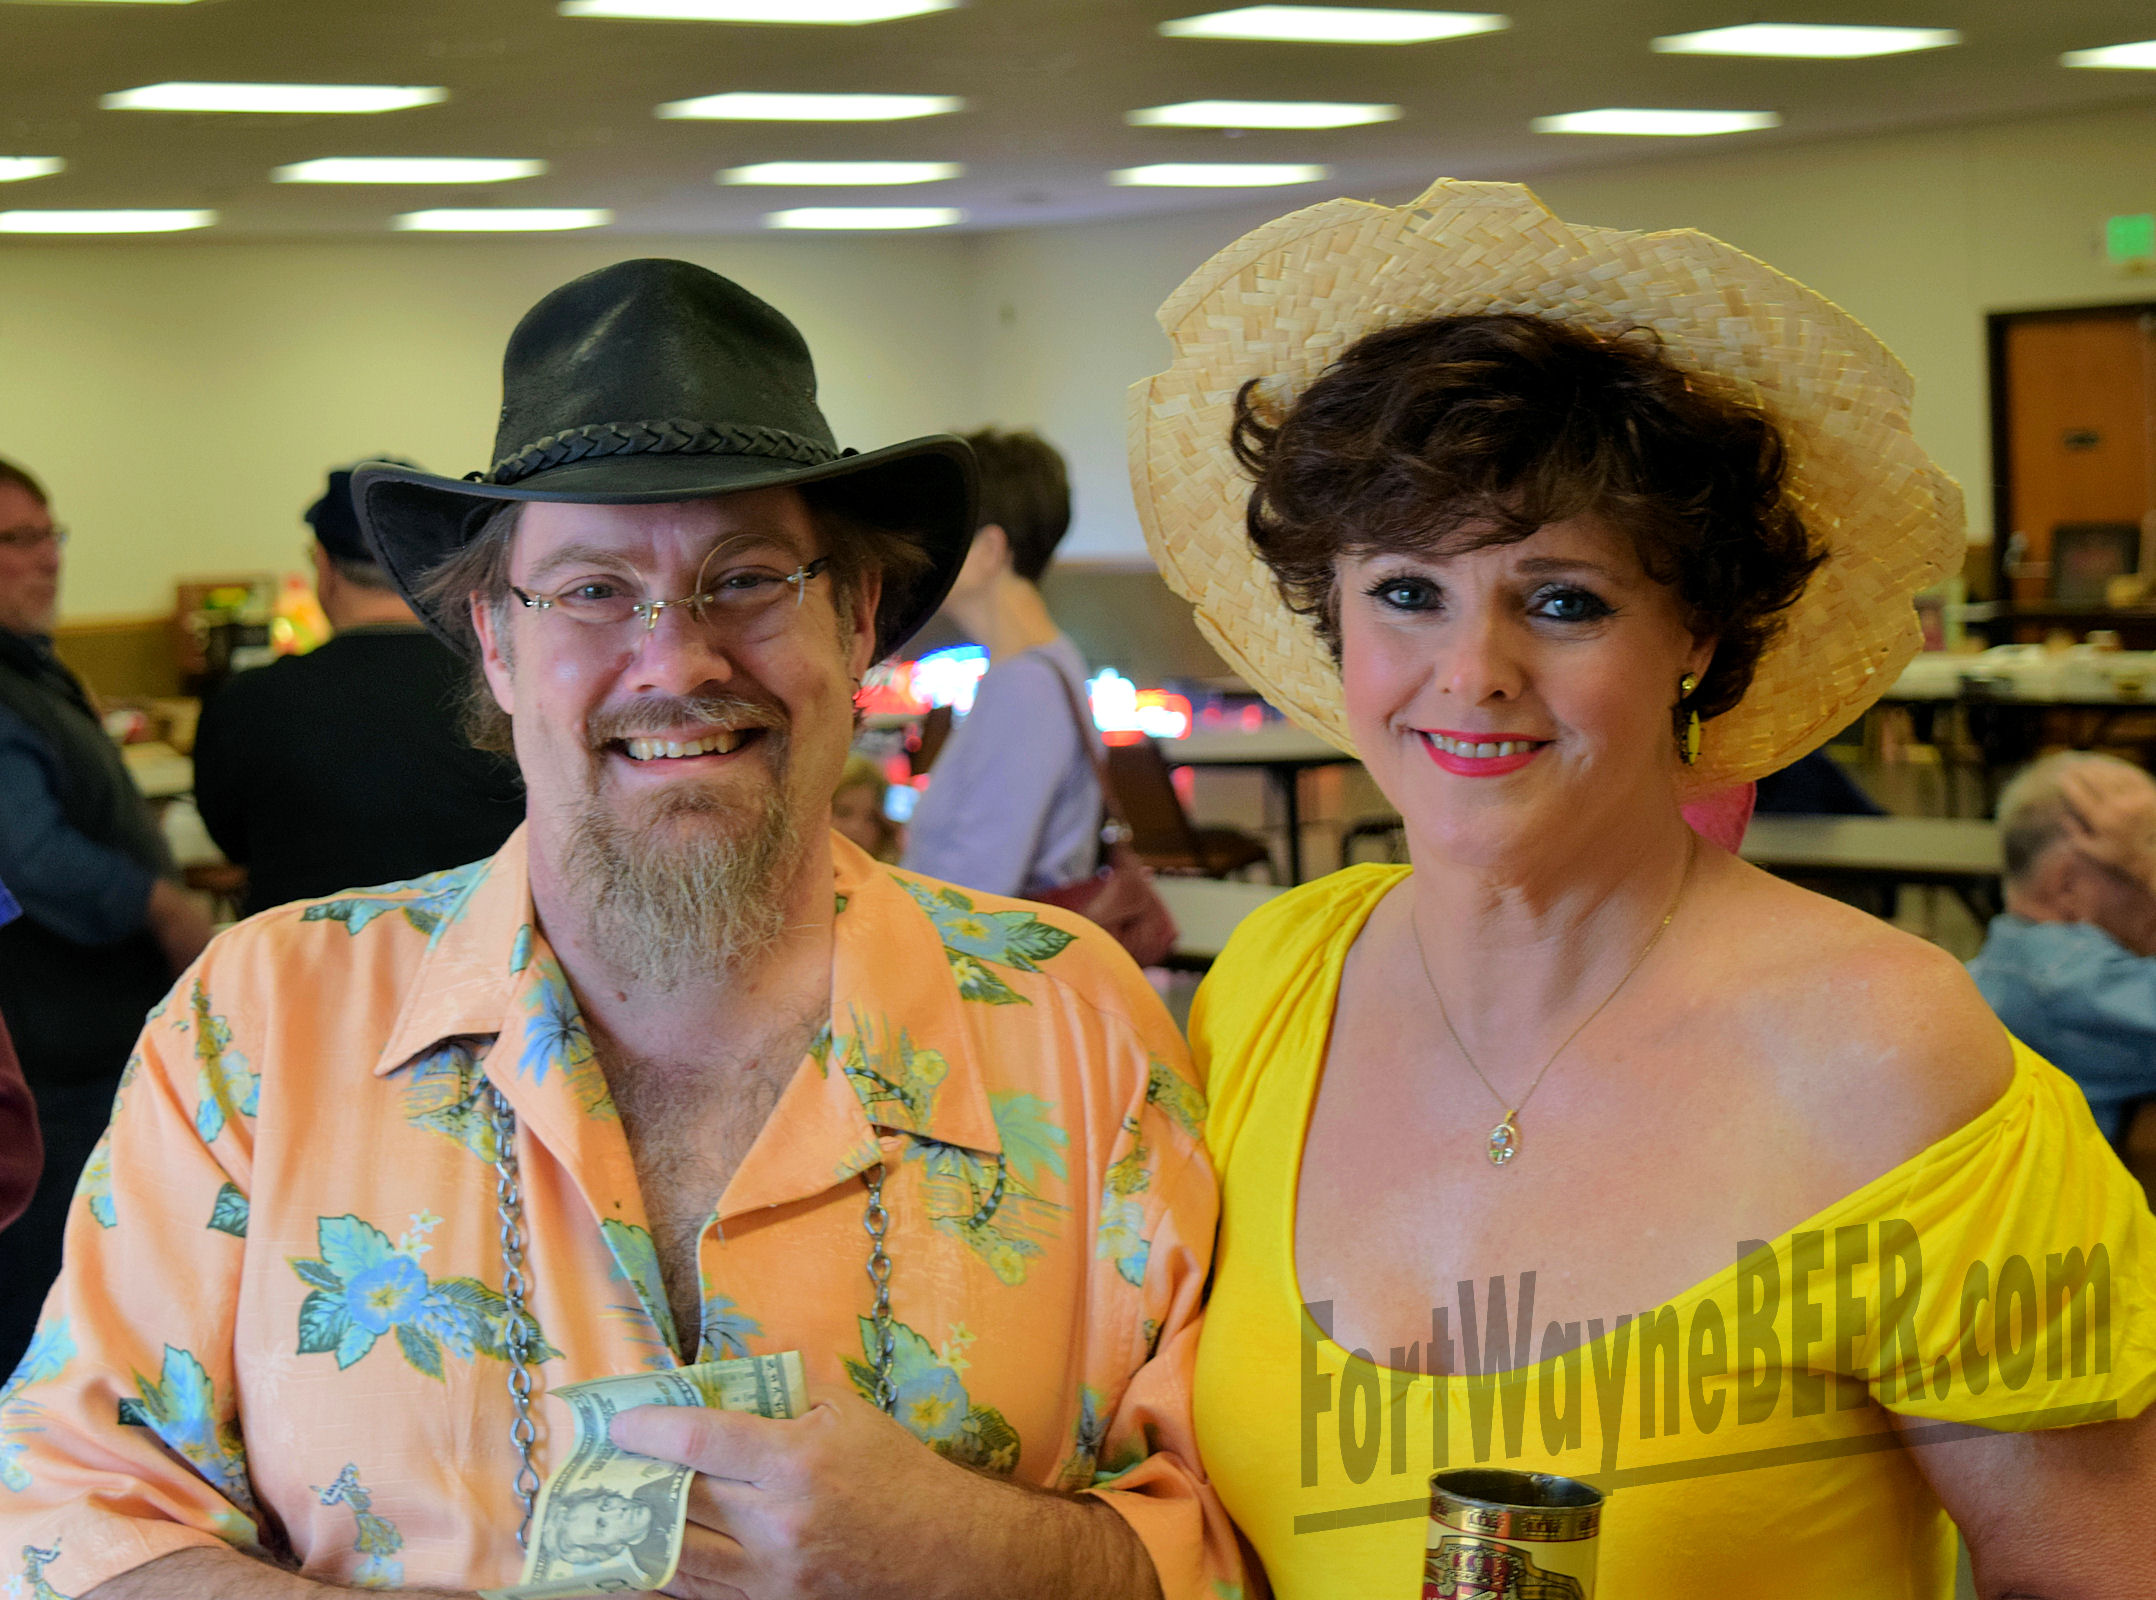 2016 Fort Wayne Brewery Collectibles Show111.JPG